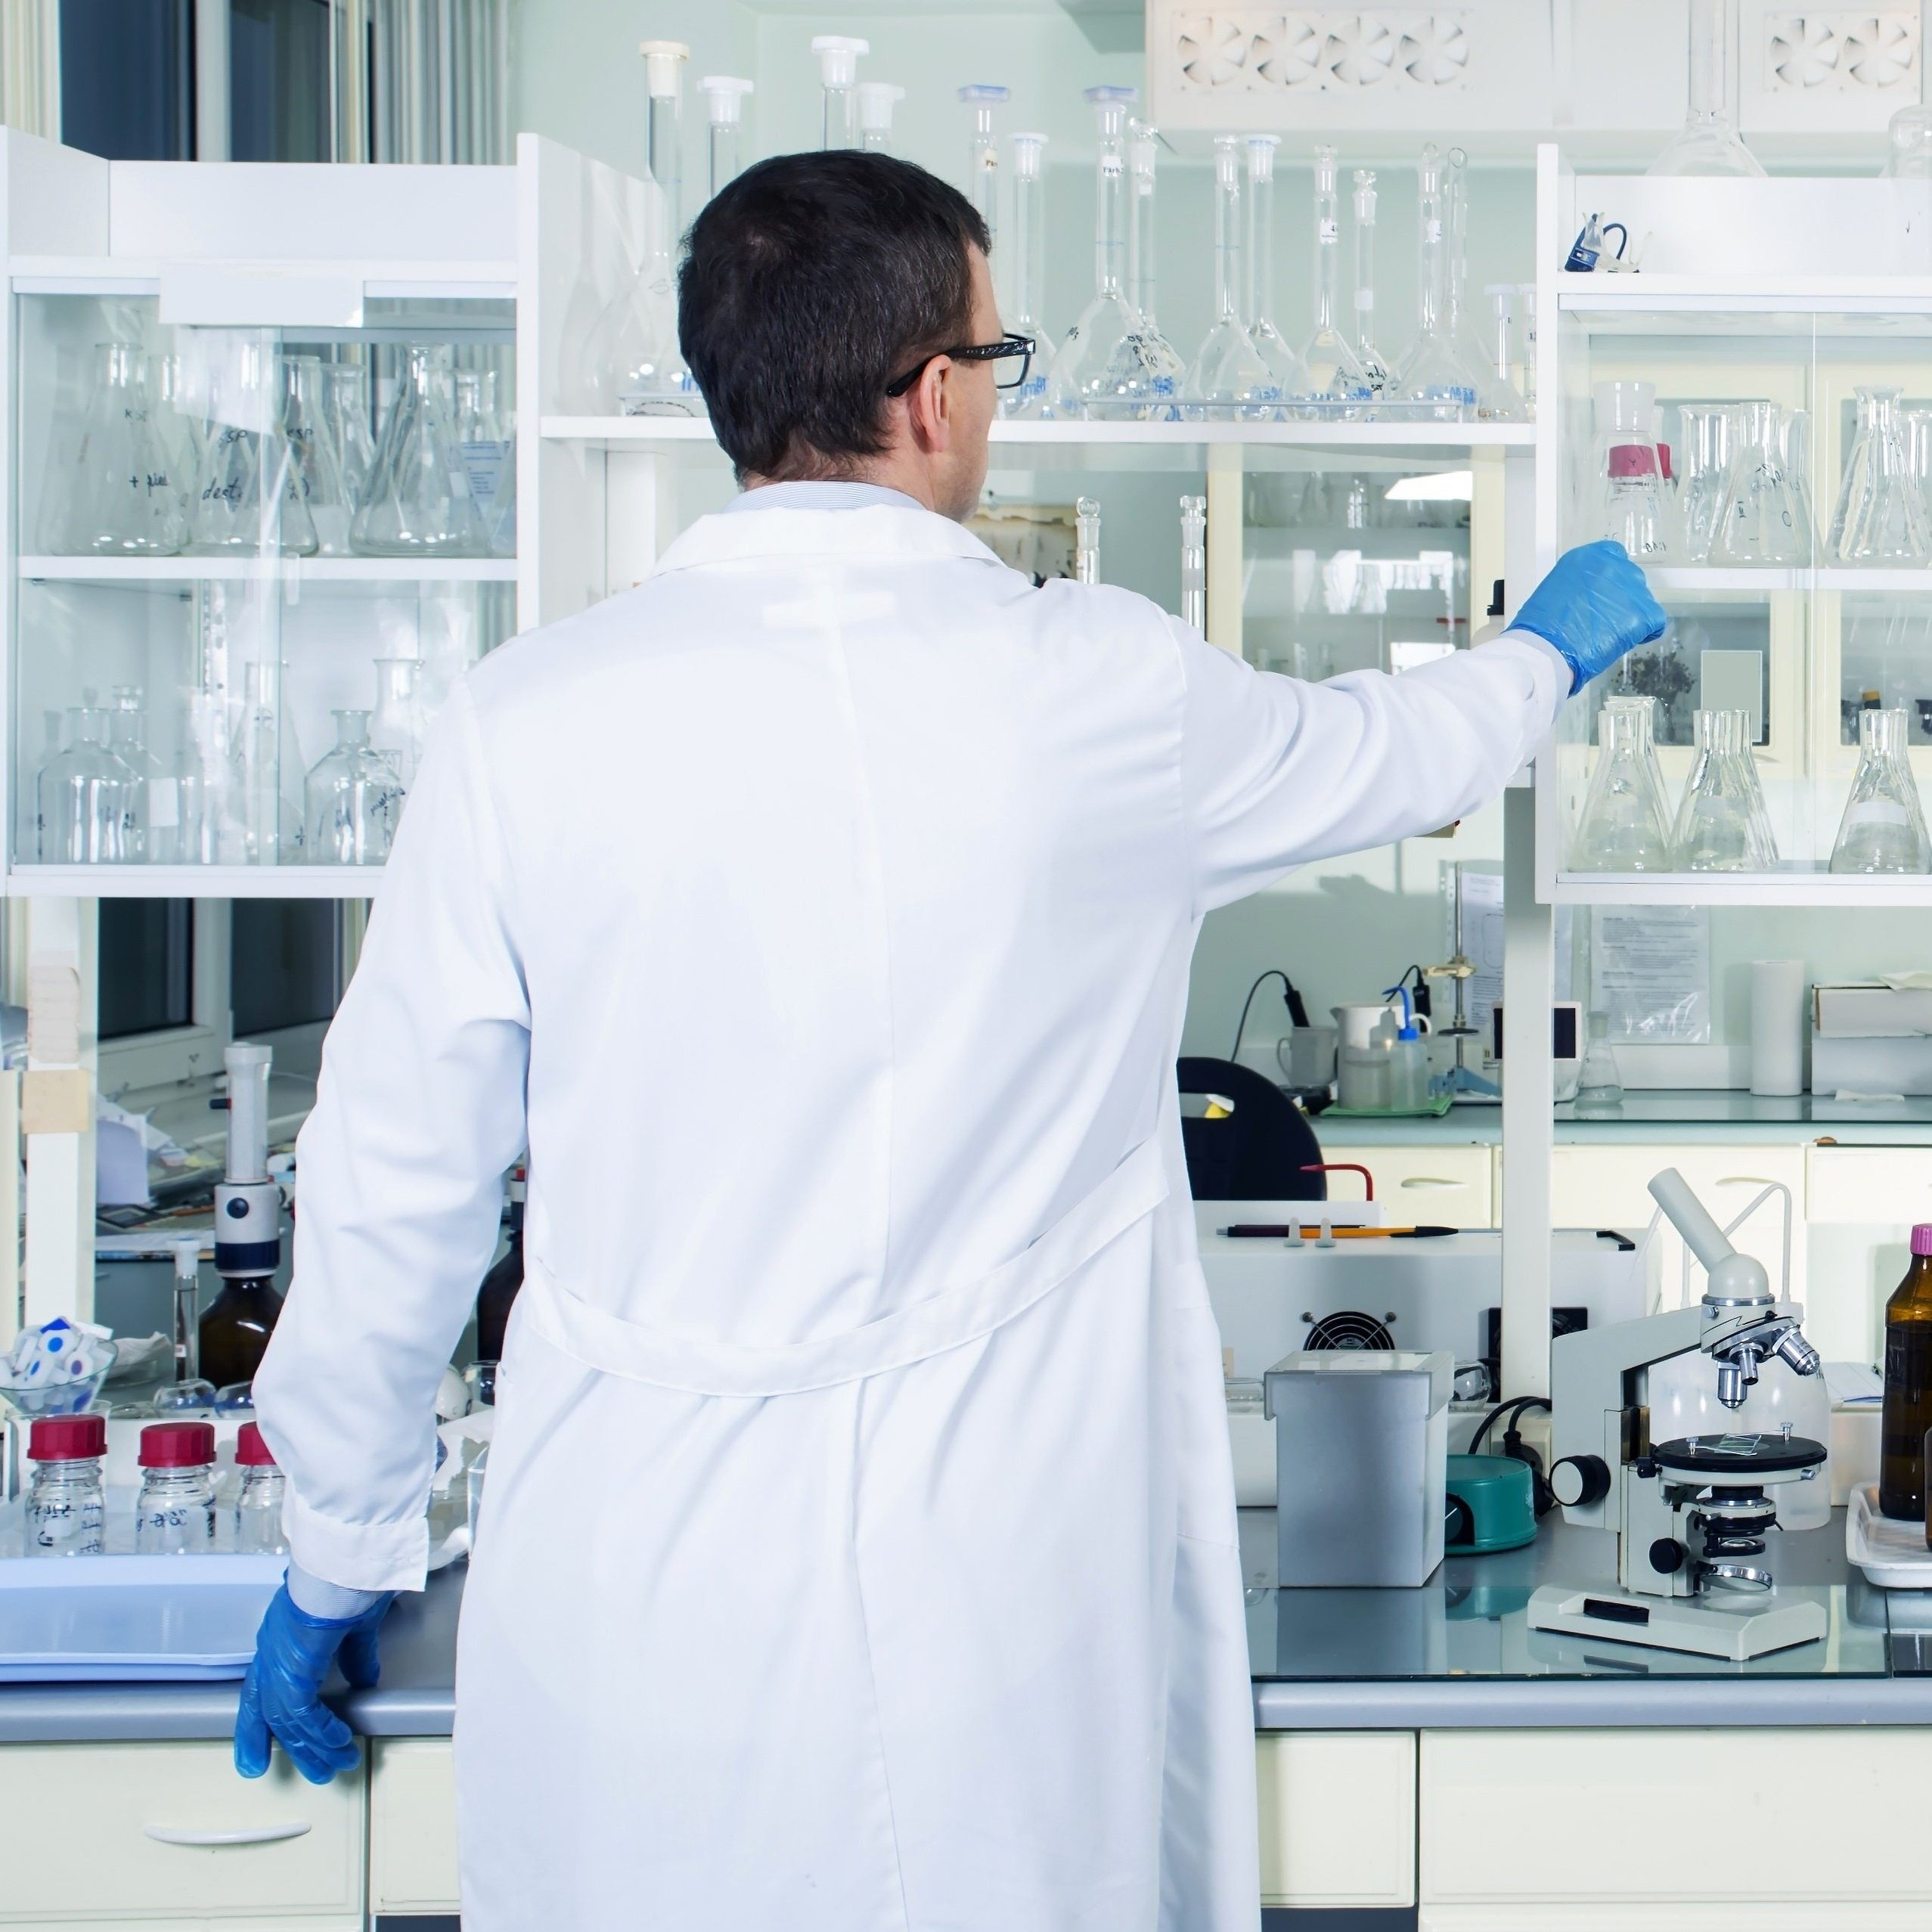 Chemist working with hazardous chemical products